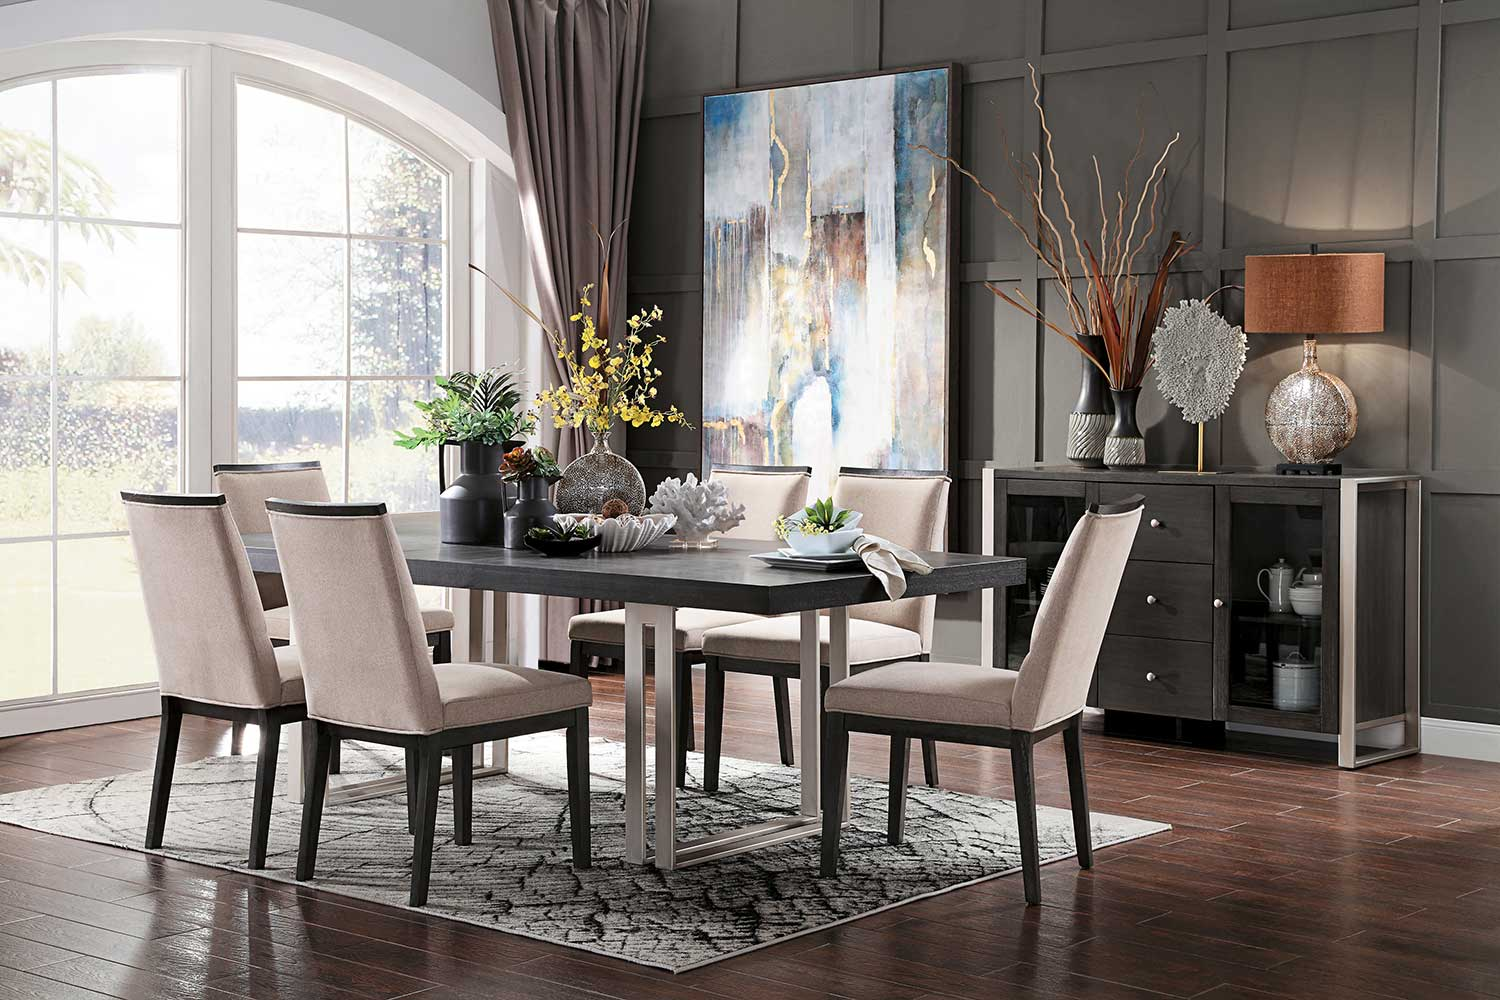 Homelegance Standish Dining Set - Gray